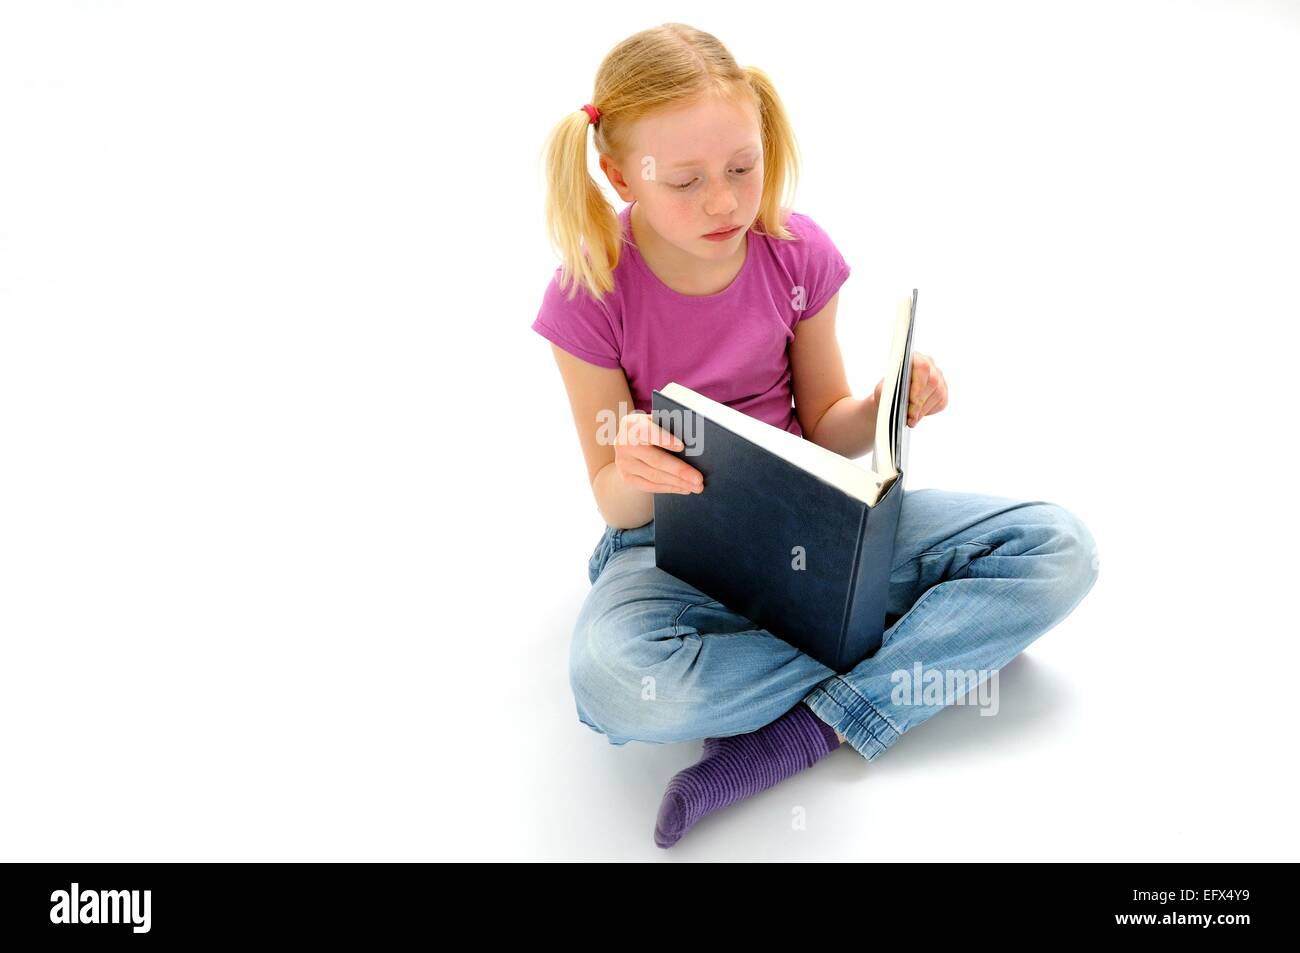 Pre teen girl reading a large book - Stock Image